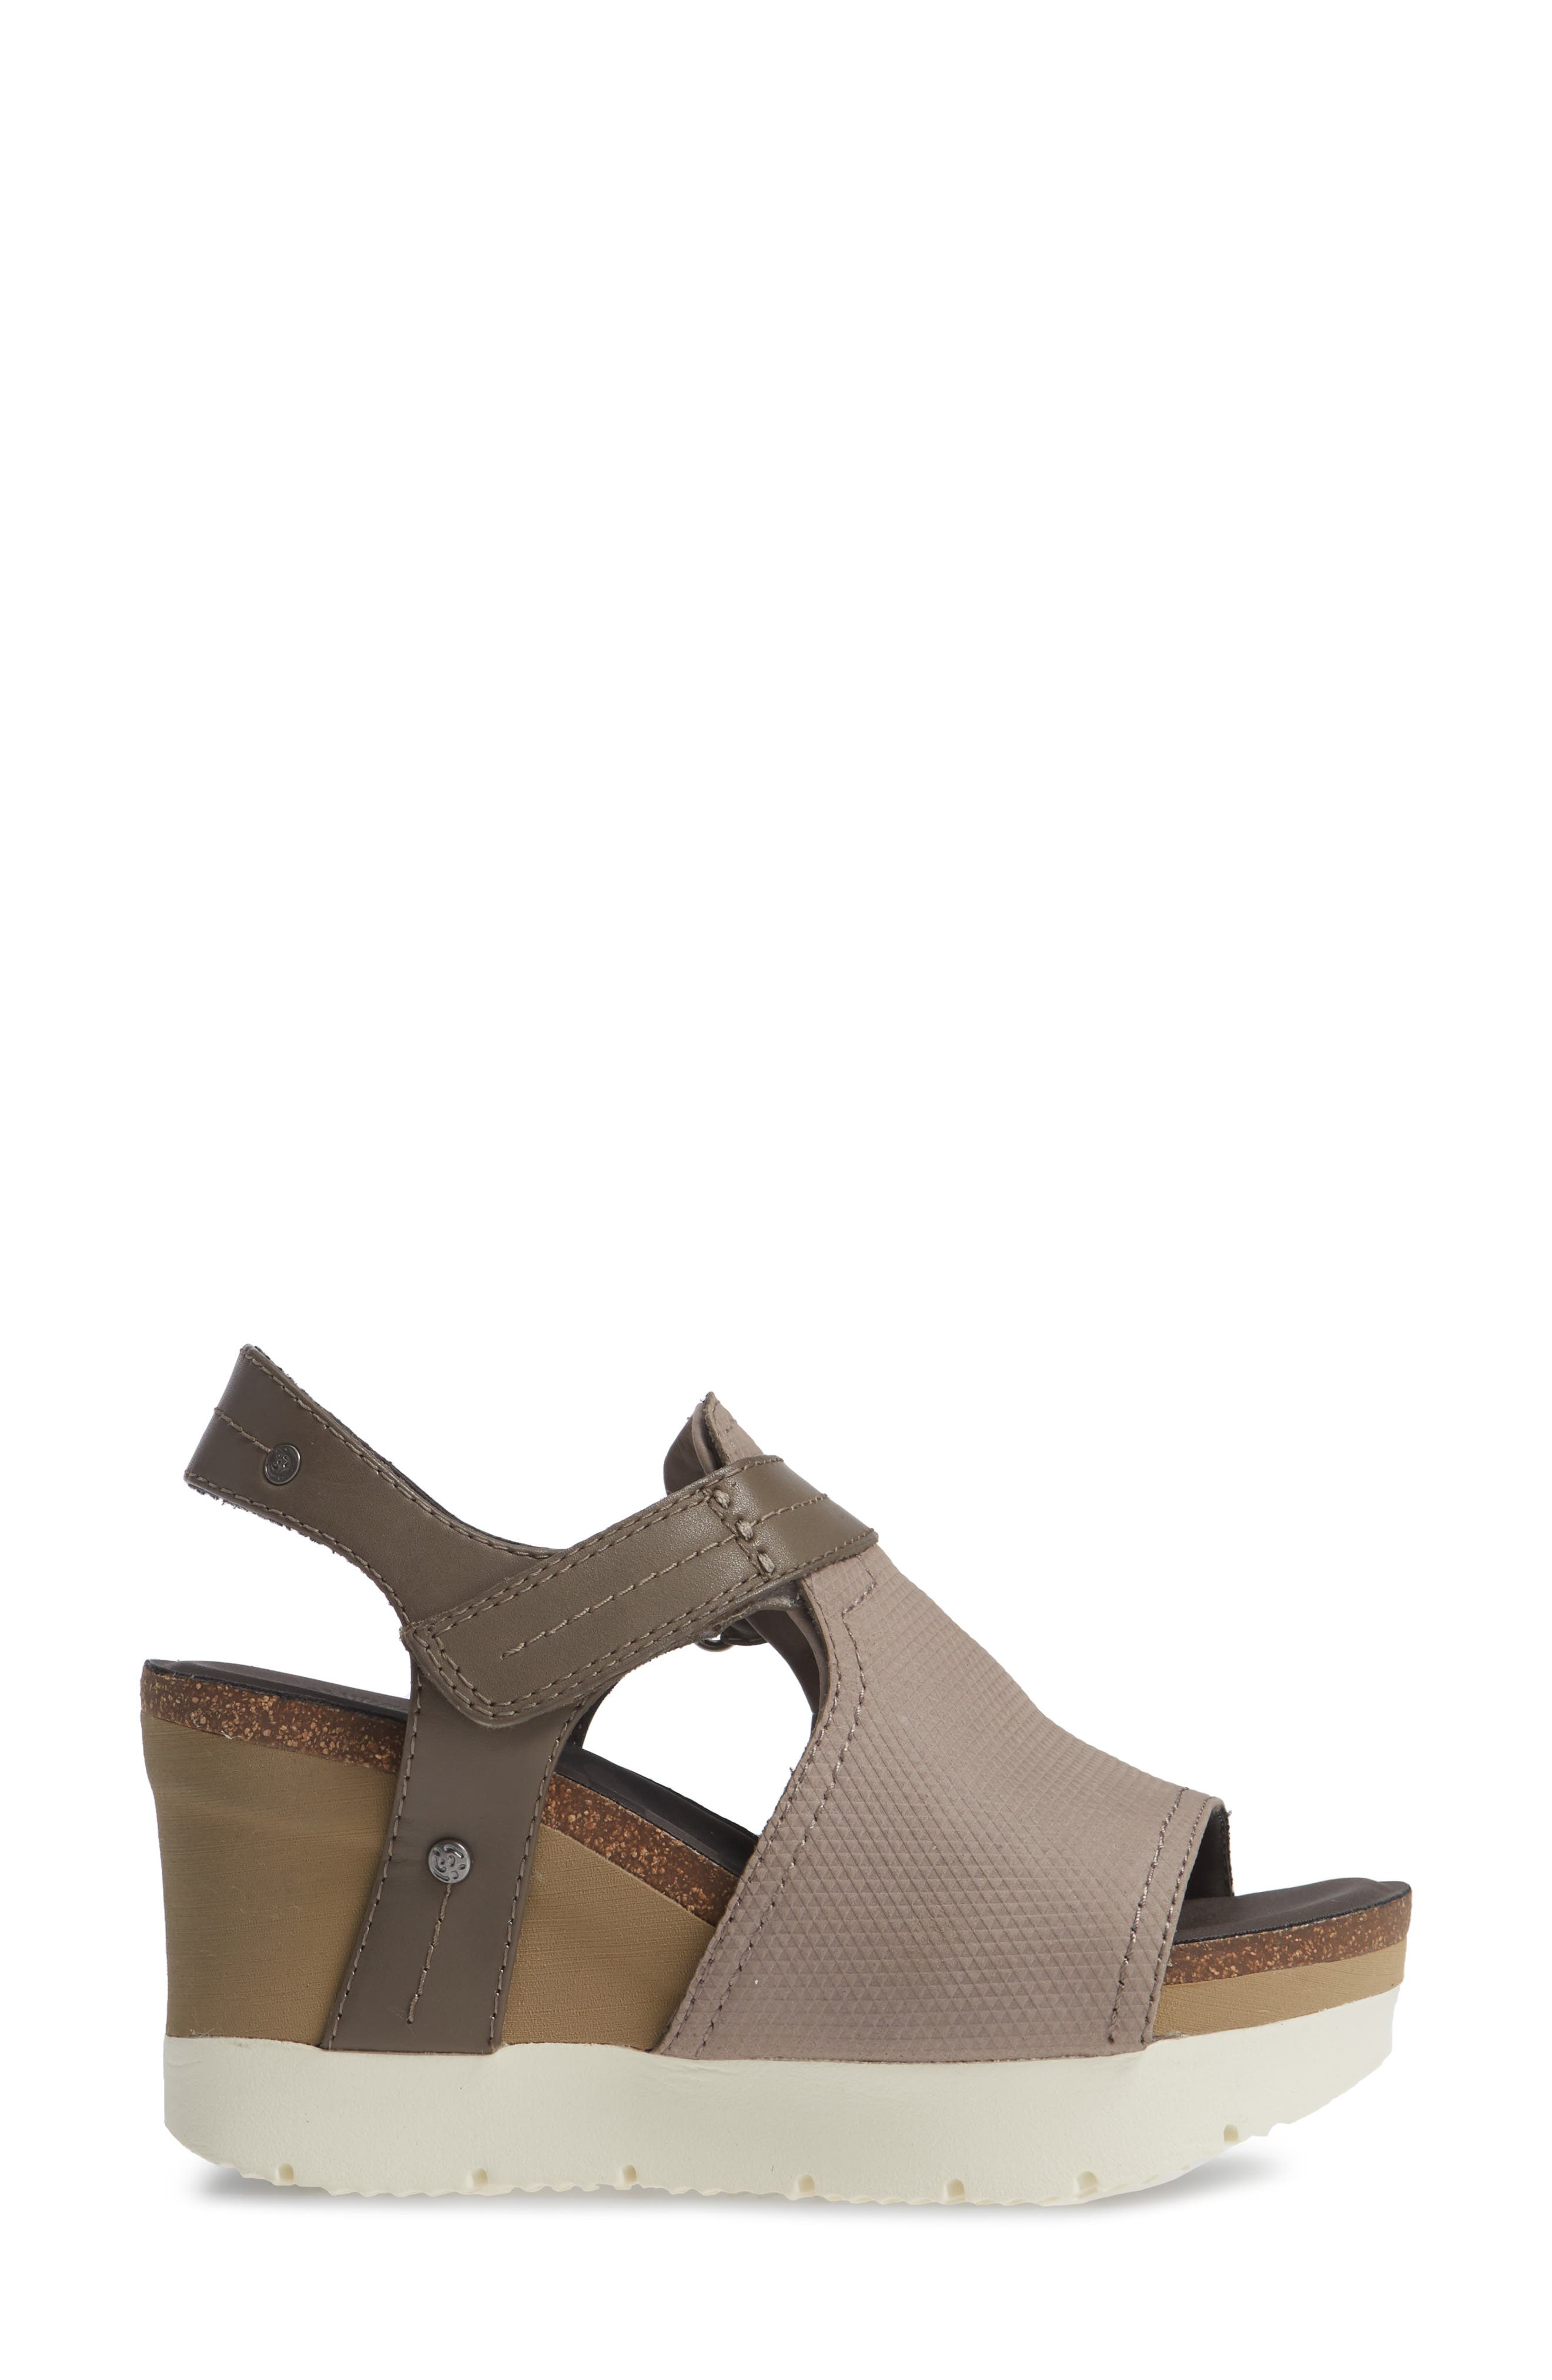 Waypoint Wedge Sandal,                             Alternate thumbnail 3, color,                             CACAO LEATHER